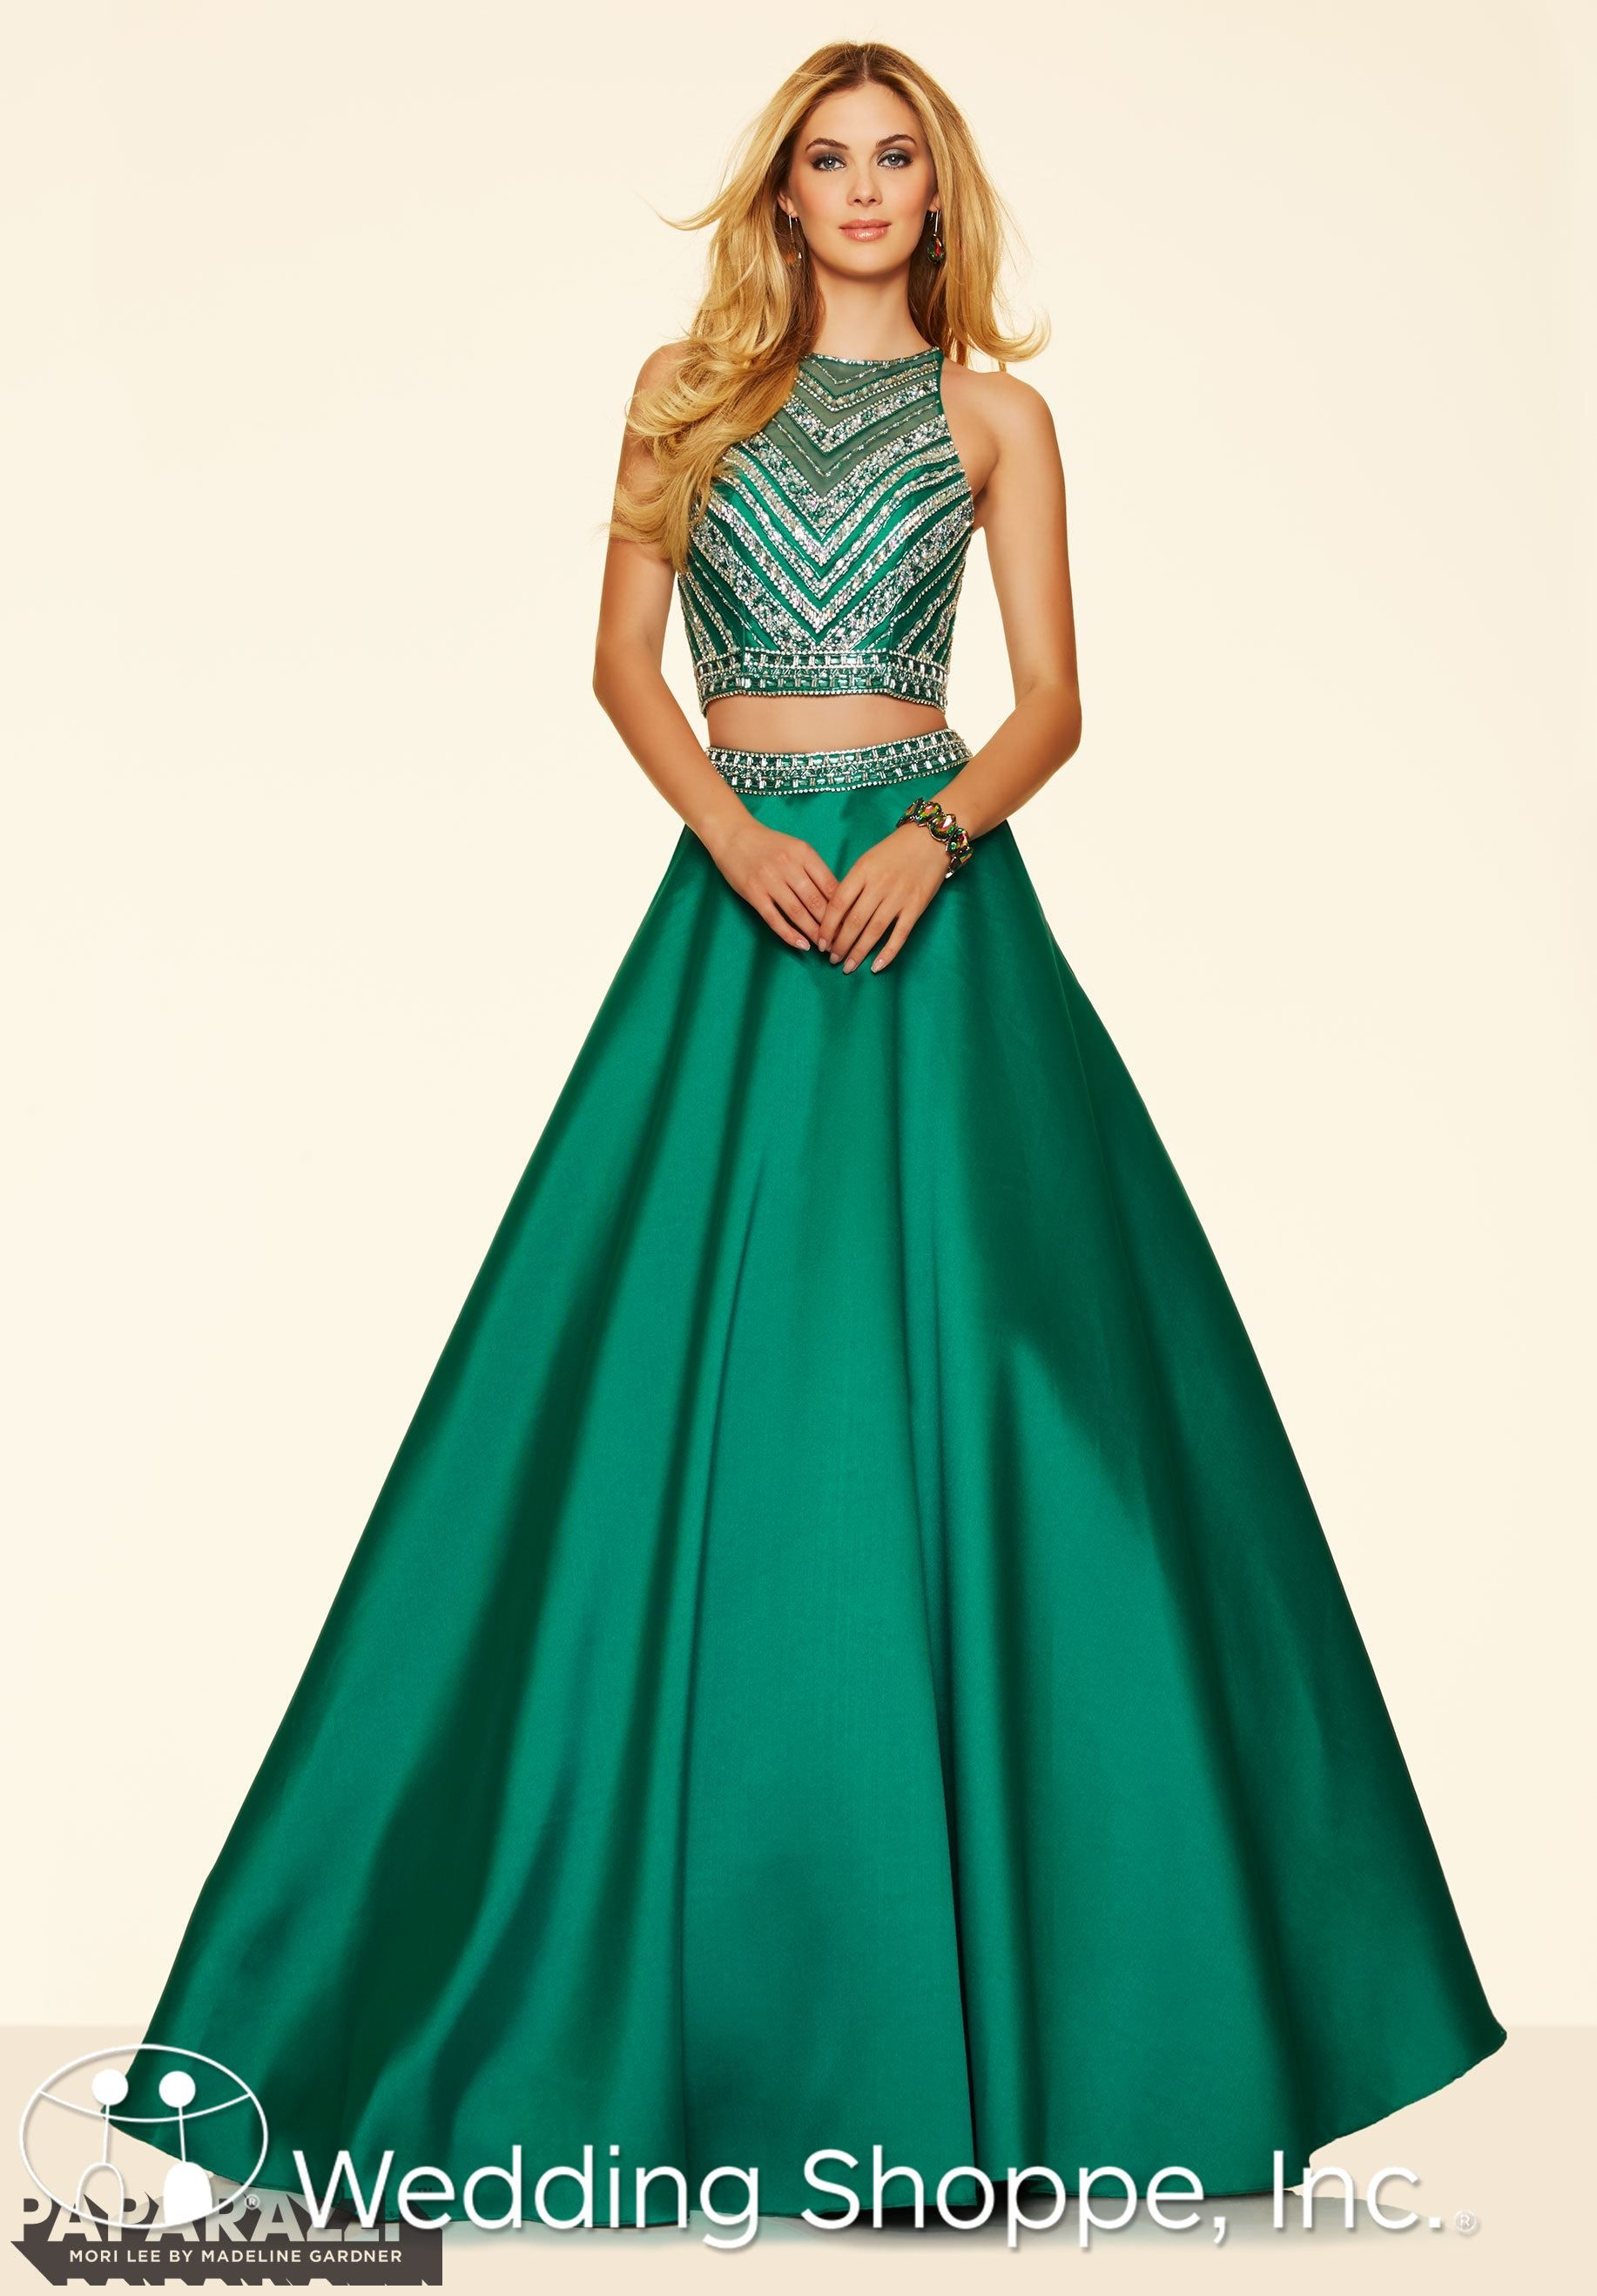 A beautiful green crop top prom dress with a stunning beaded ...